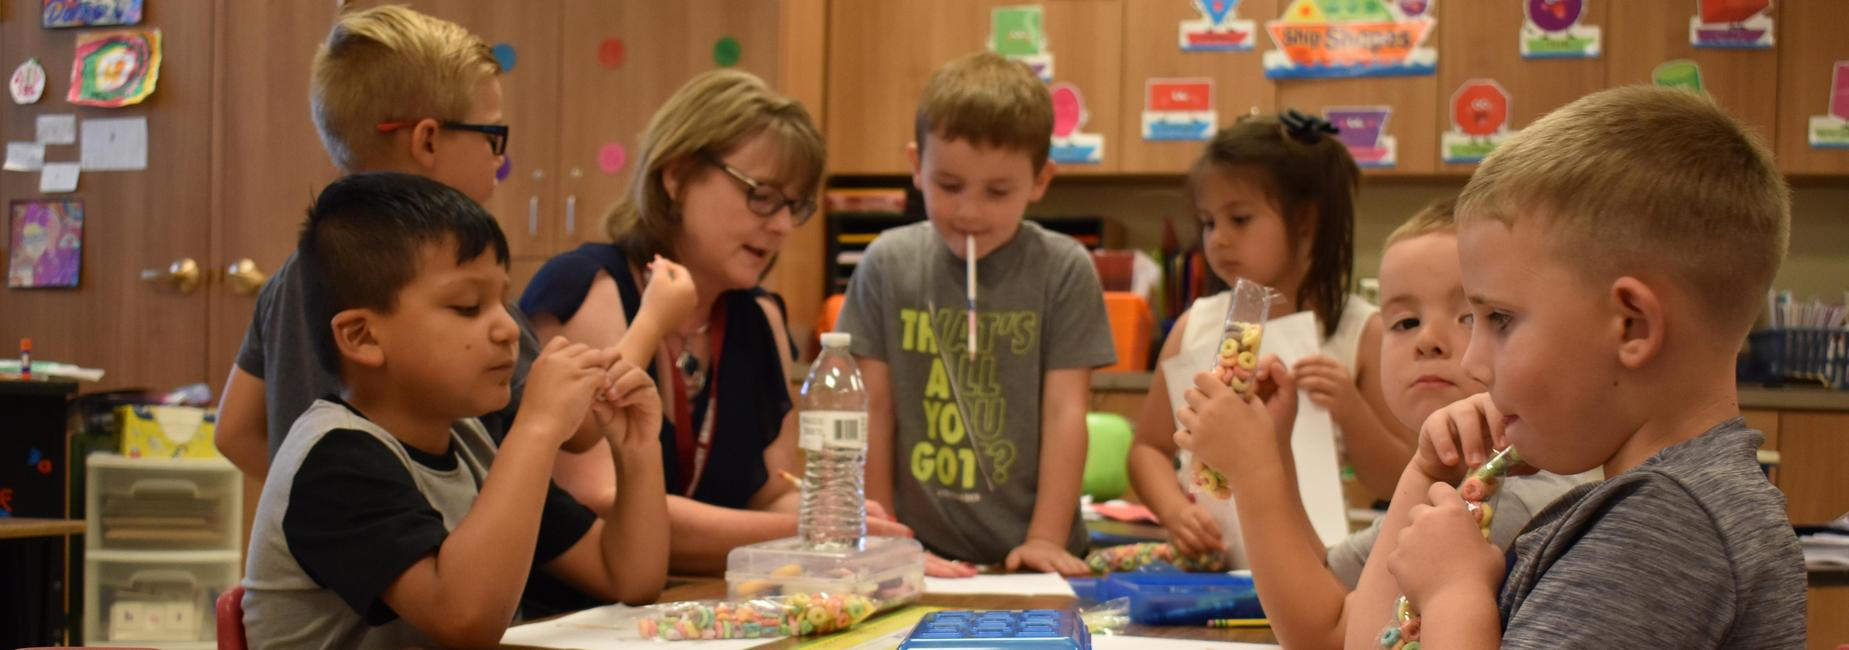 Students and teacher gather around table during snack time